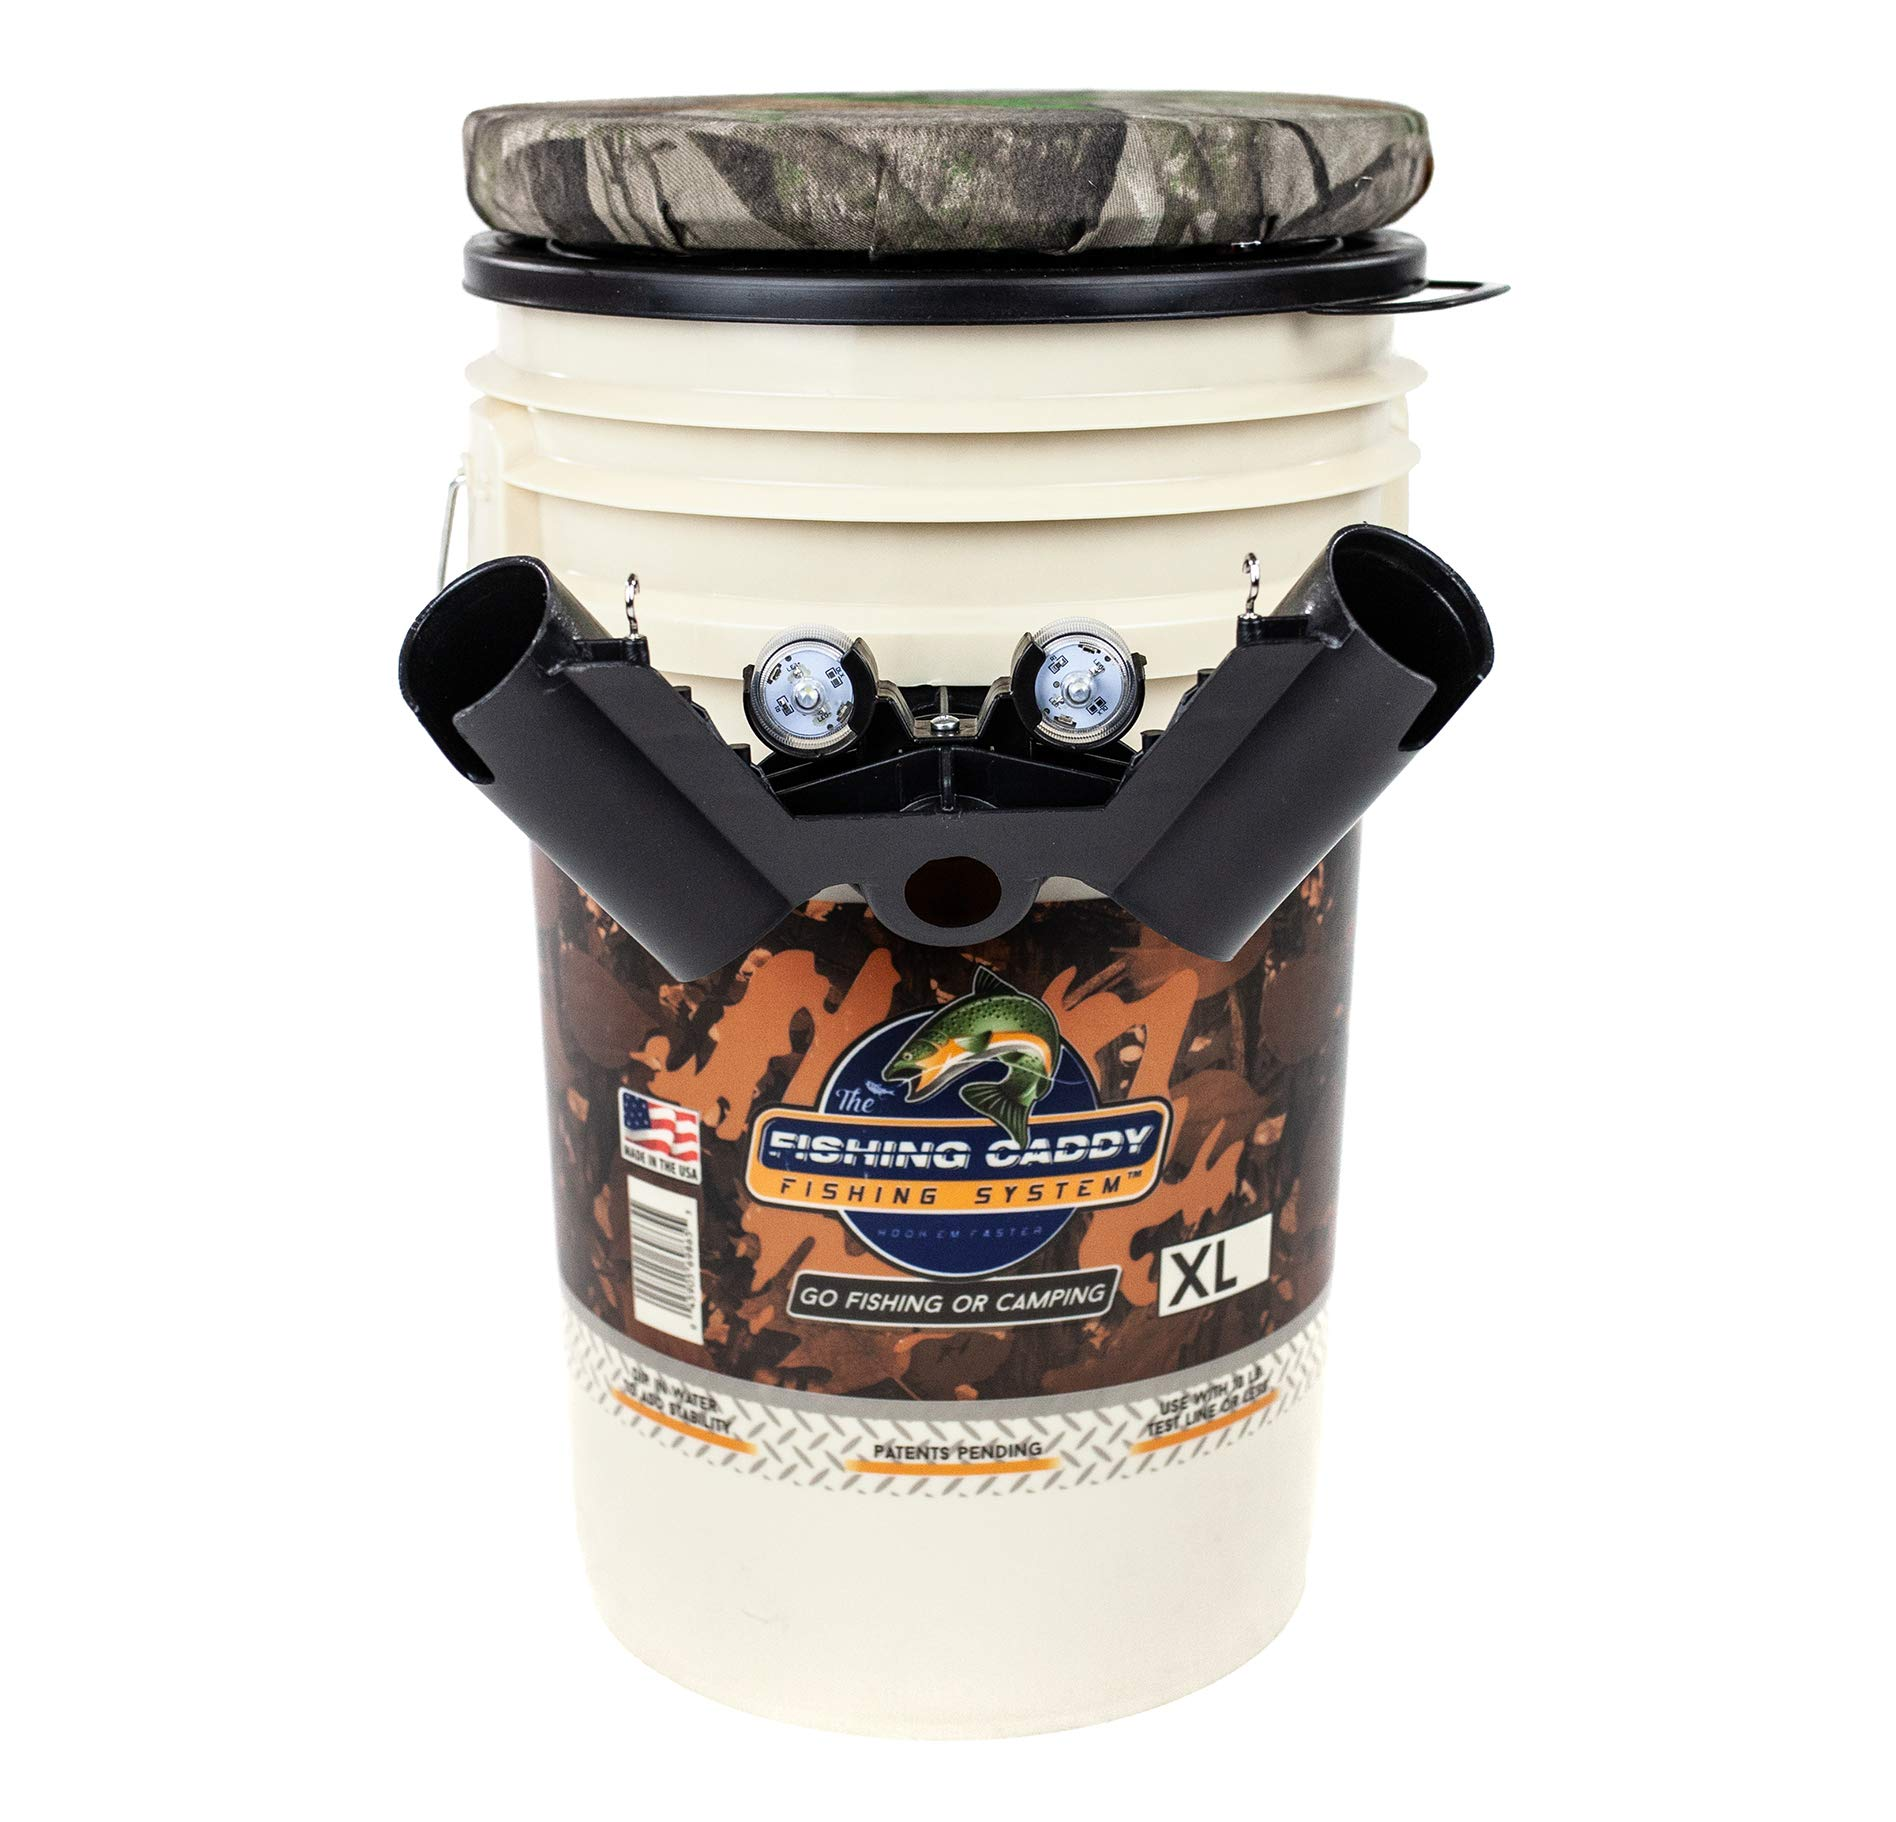 THE FISHING CADDY - Fishing Bucket Storage or Bait Holder w/CAMO Swivel Padded Seat, Dual Fishing Rod Holder, Cup Holder or Beer Holder & LED Waterproof Light for Night Fishing - Fisherman Gift Camo